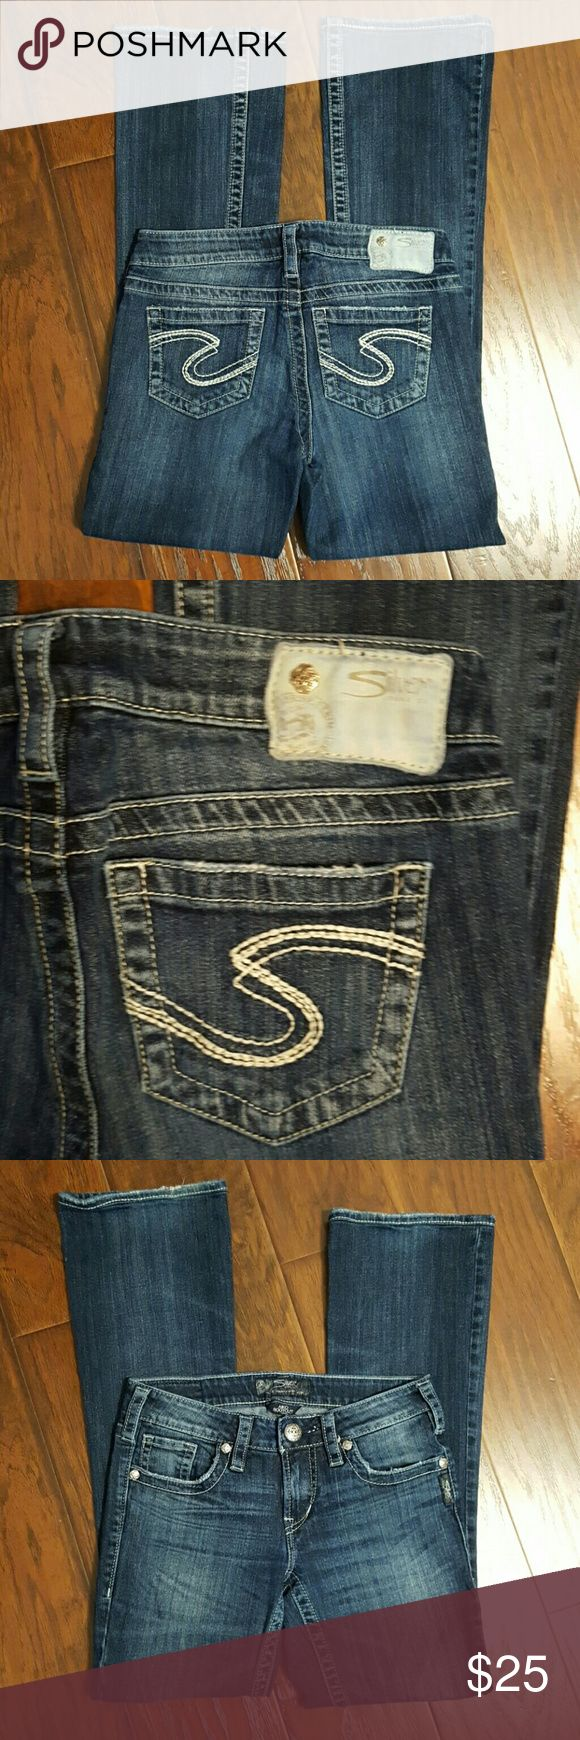 1000  ideas about Silver Jeans on Pinterest | Buckle jeans miss